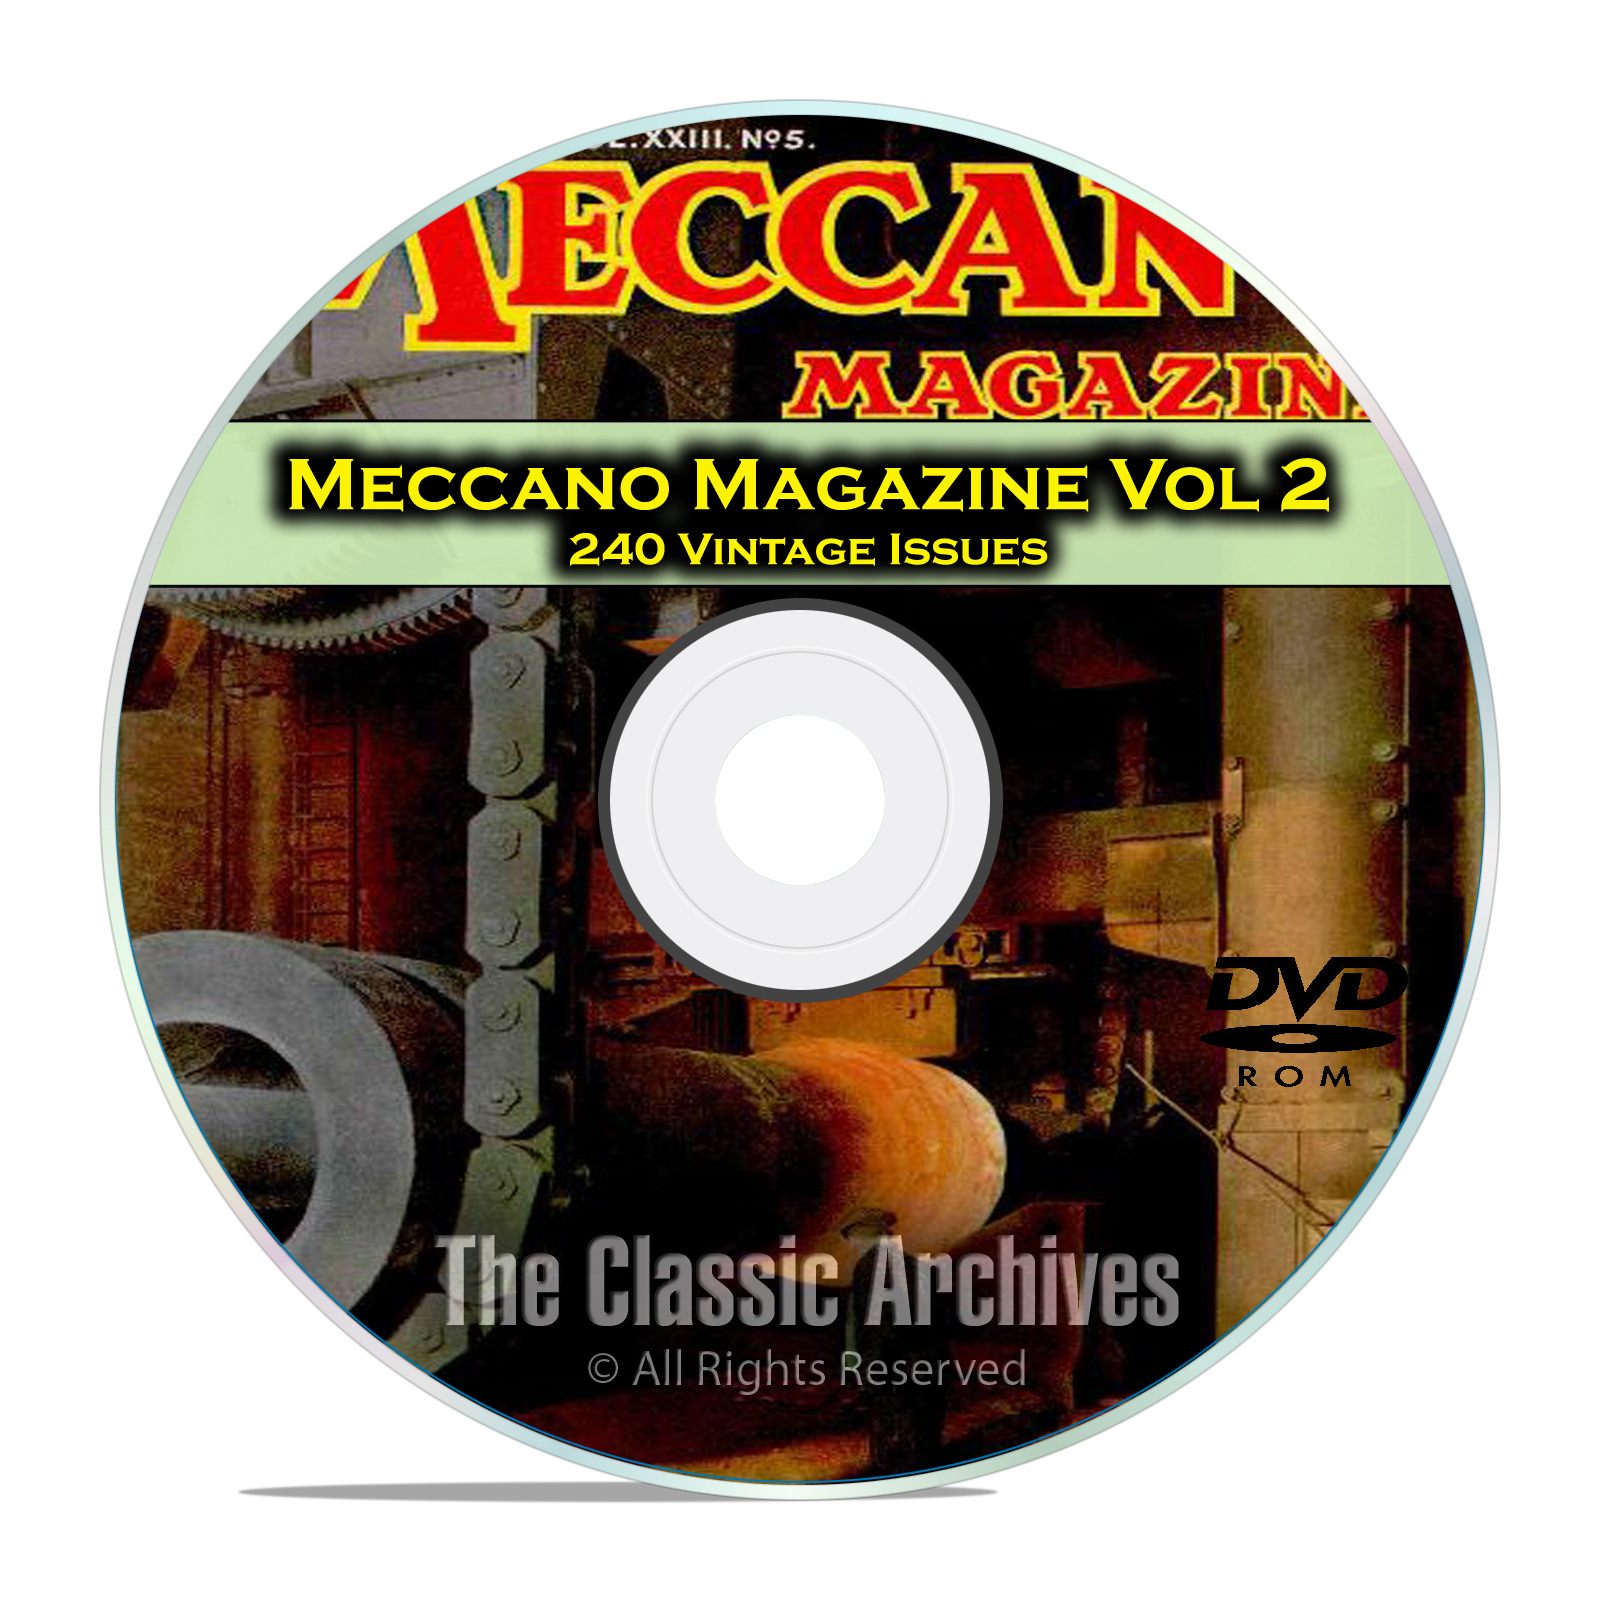 Meccano Magazine Volume 2, 240 Vintage Issues, Boy Hobby Magazine DVD